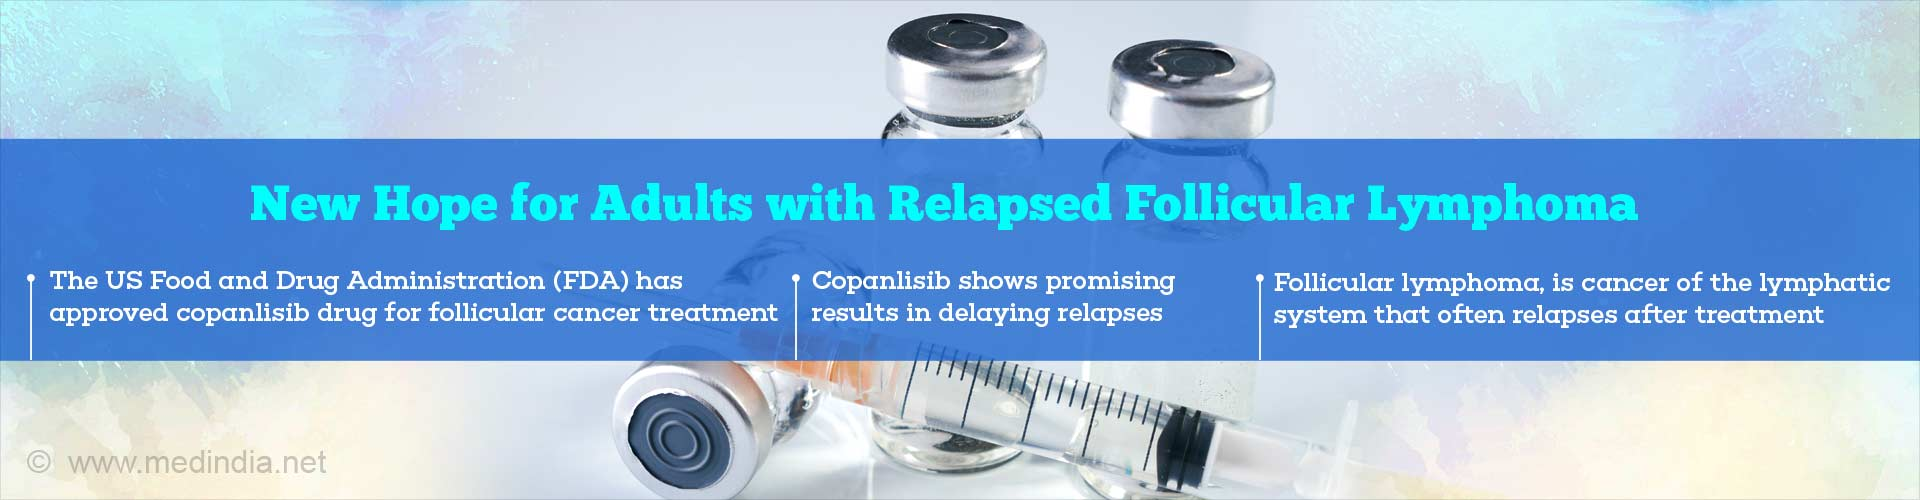 New hope for adults with relapsed follicular lymphoma